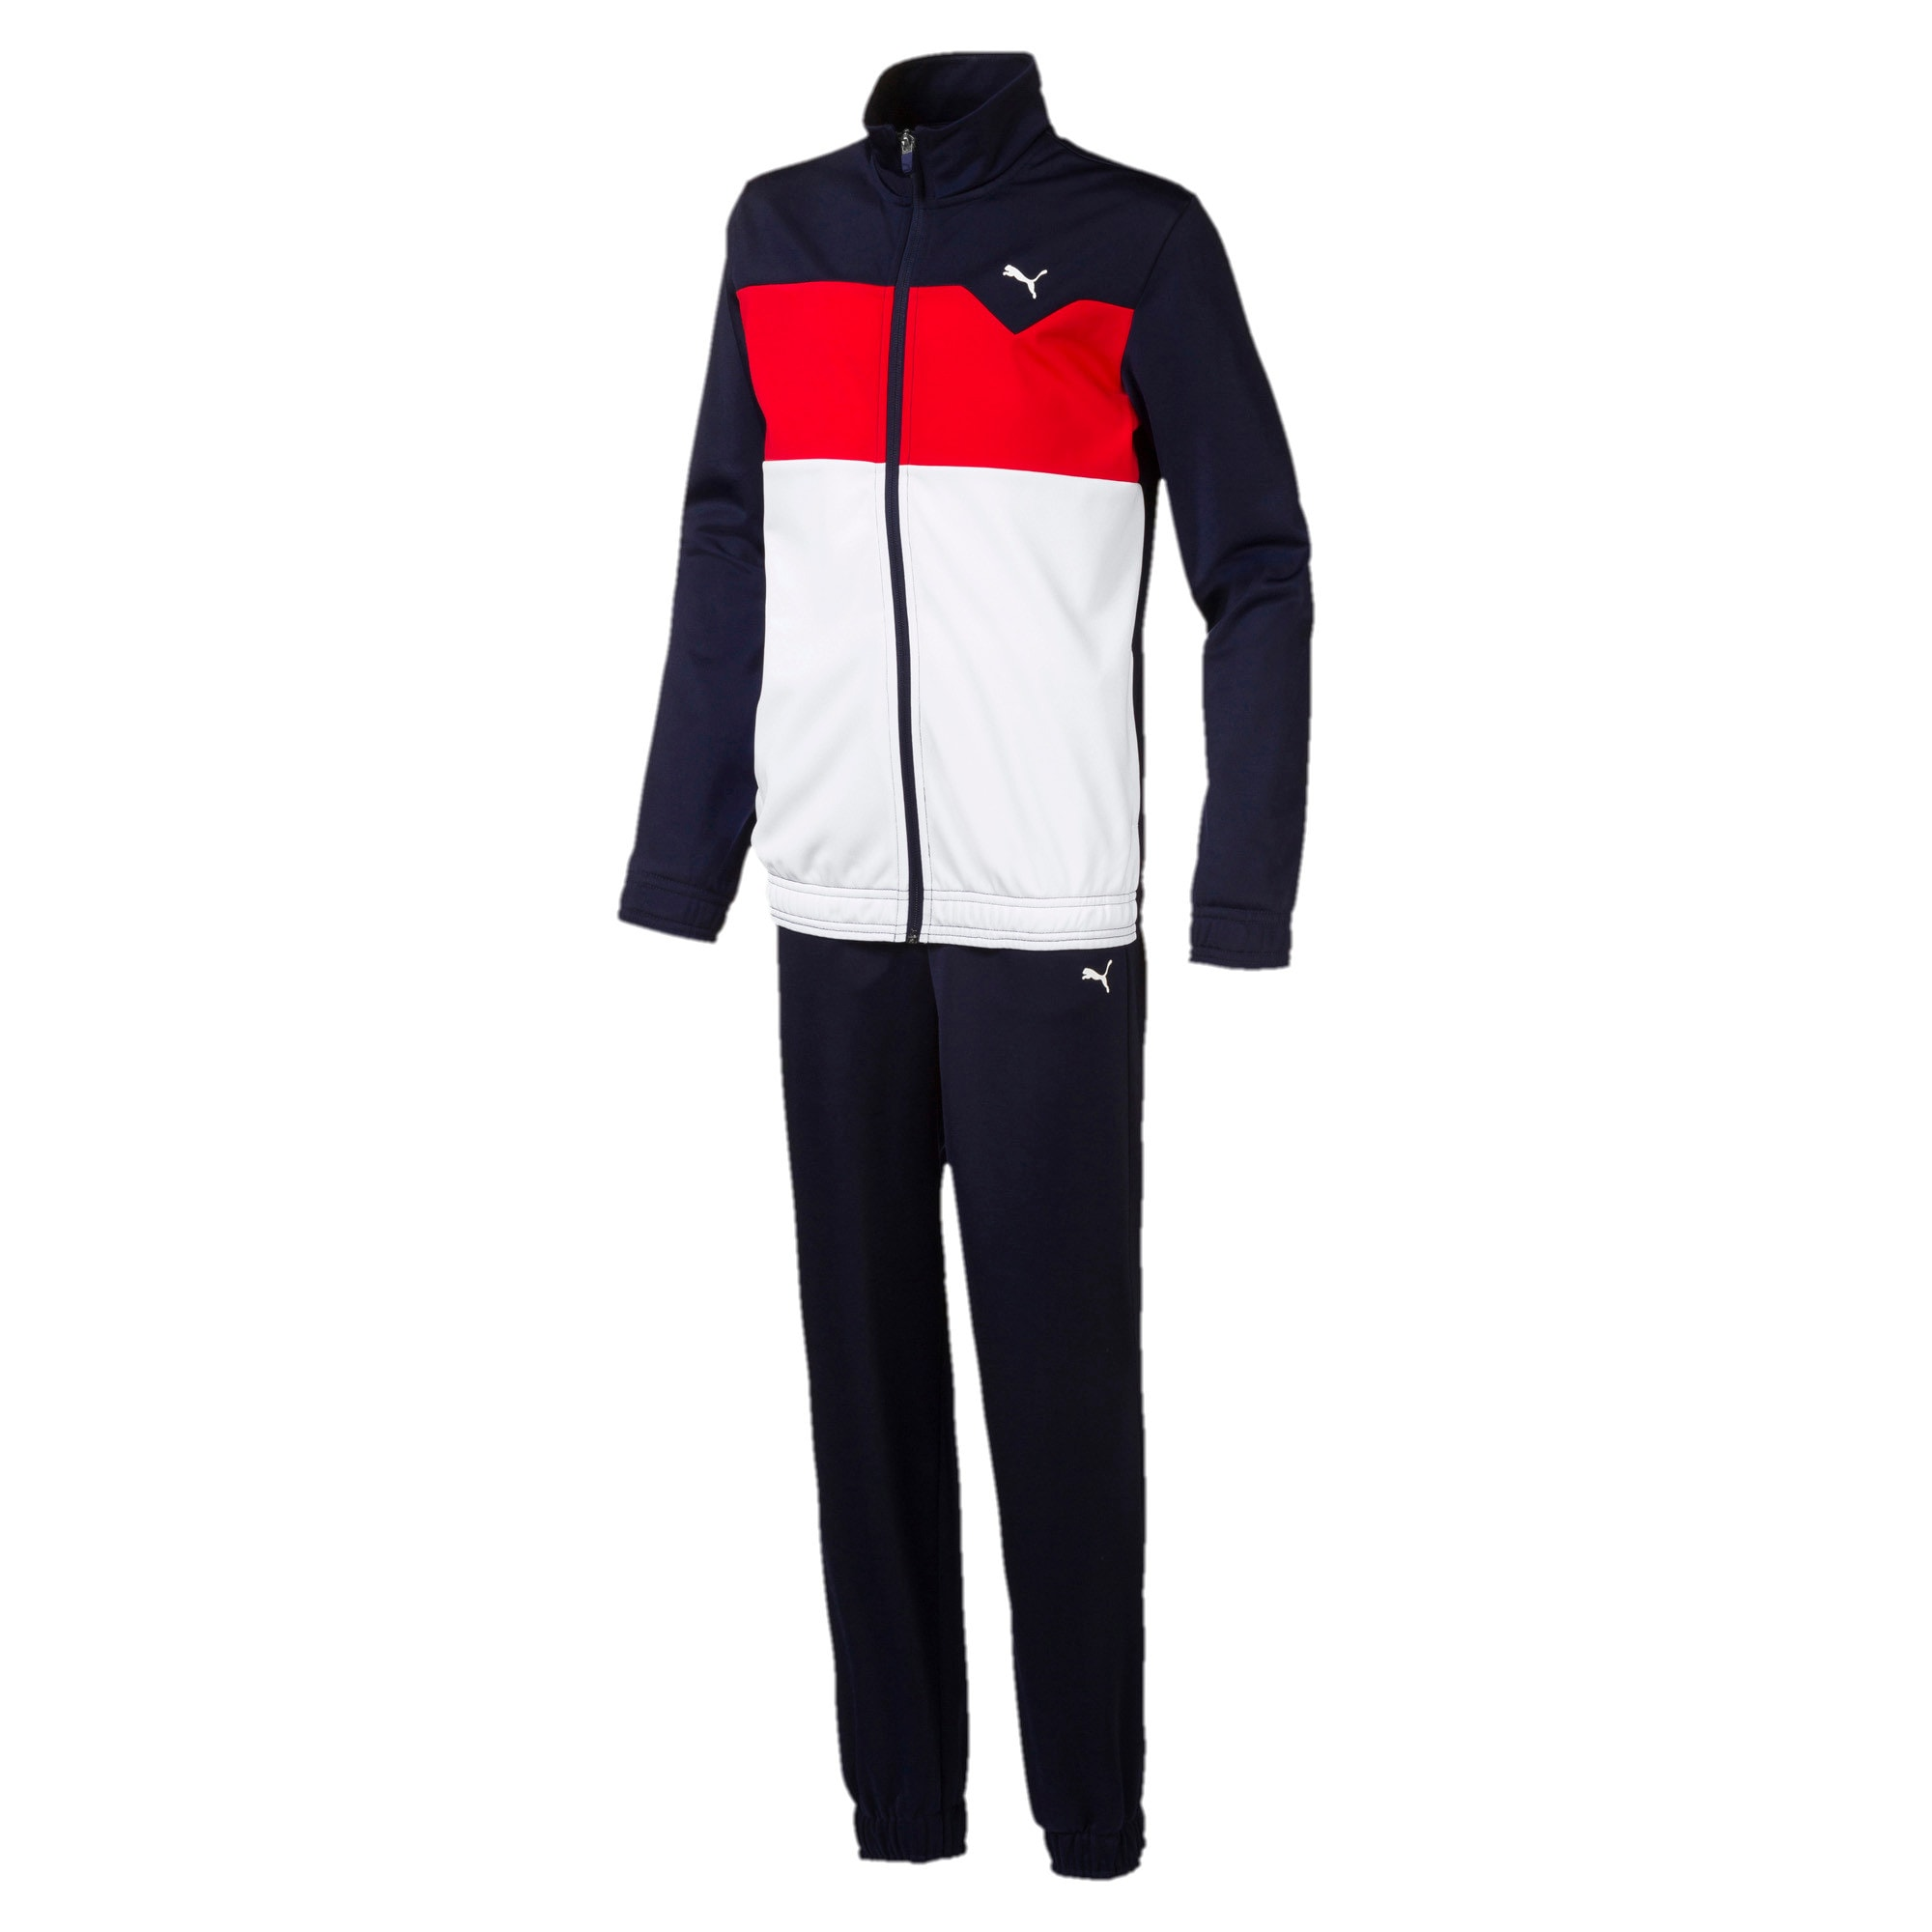 Thumbnail 1 of Tricot I Boys' Track Suit, Peacoat, medium